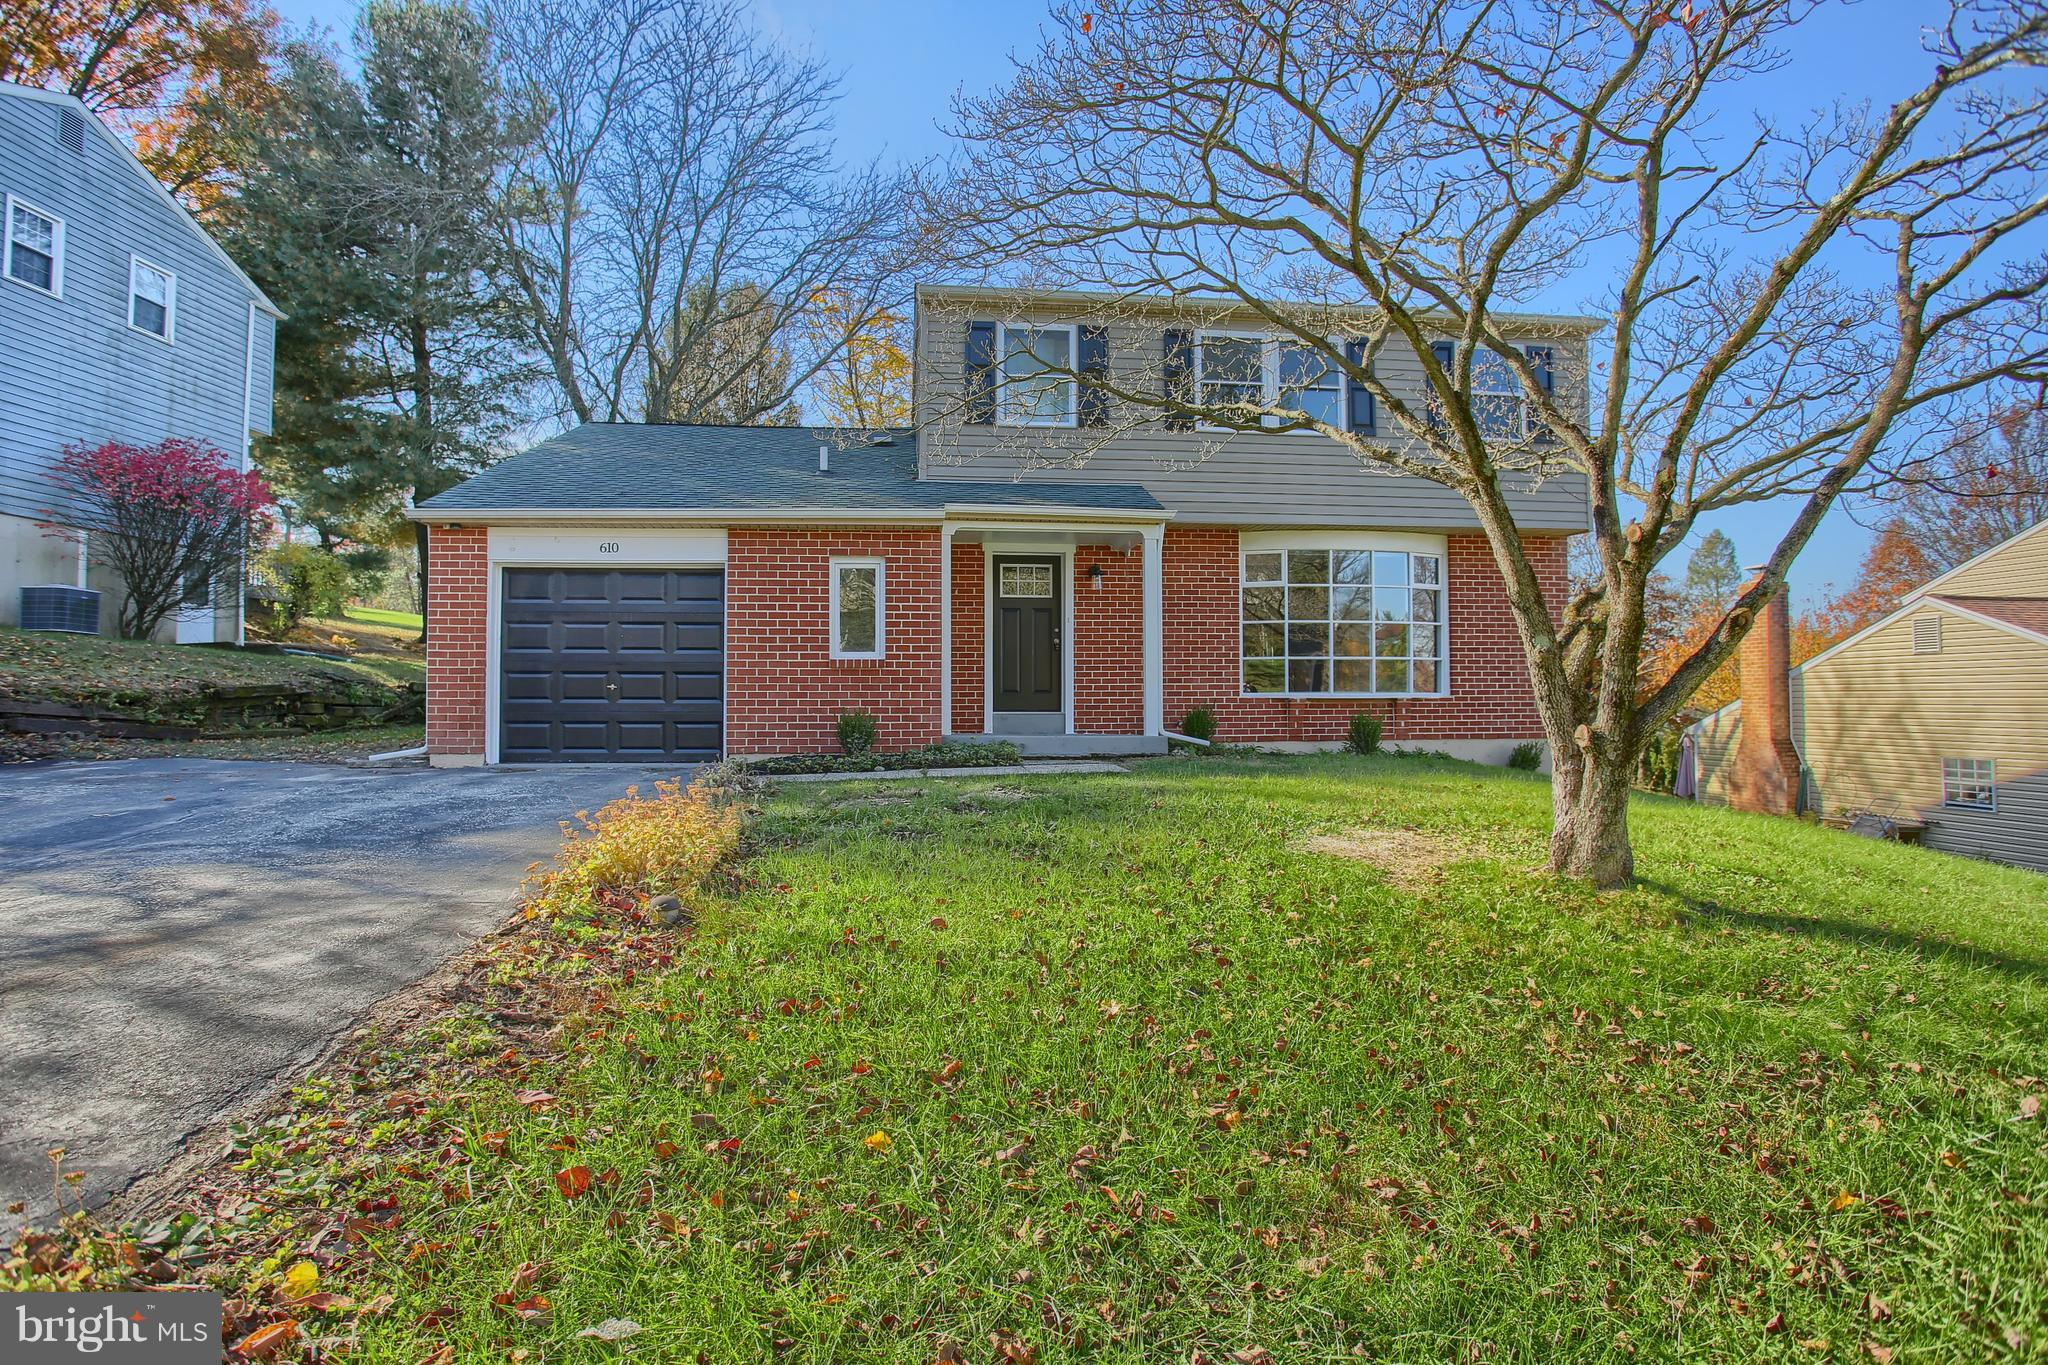 Residential for sale in EXTON, Pennsylvania, PACT188270